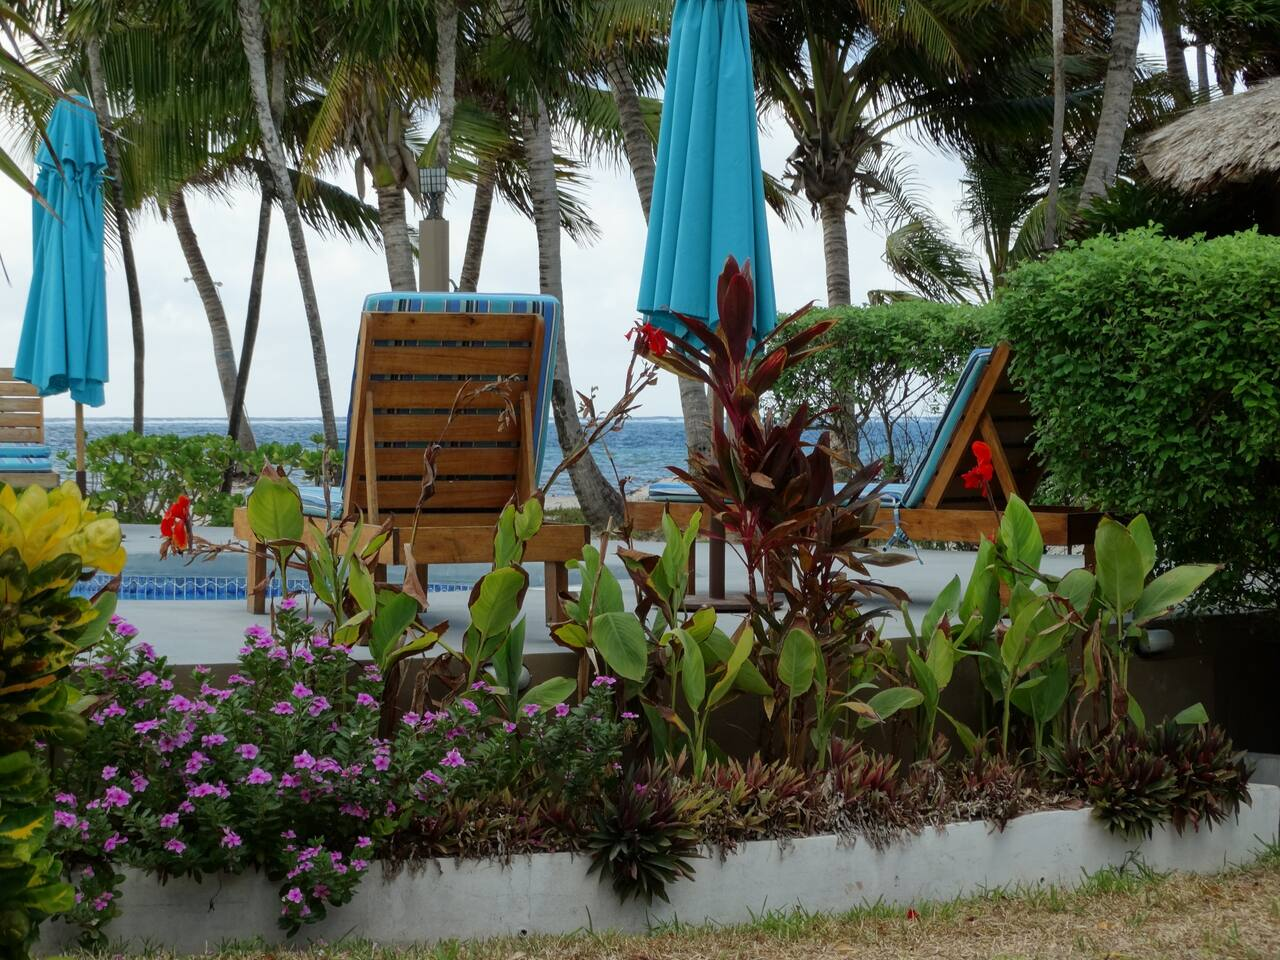 We are located in a quiet and relaxing resort, with a restaurant, dive shop, tiki bar, free WiFi, bikes, sea kayaks and daily housekeeping.